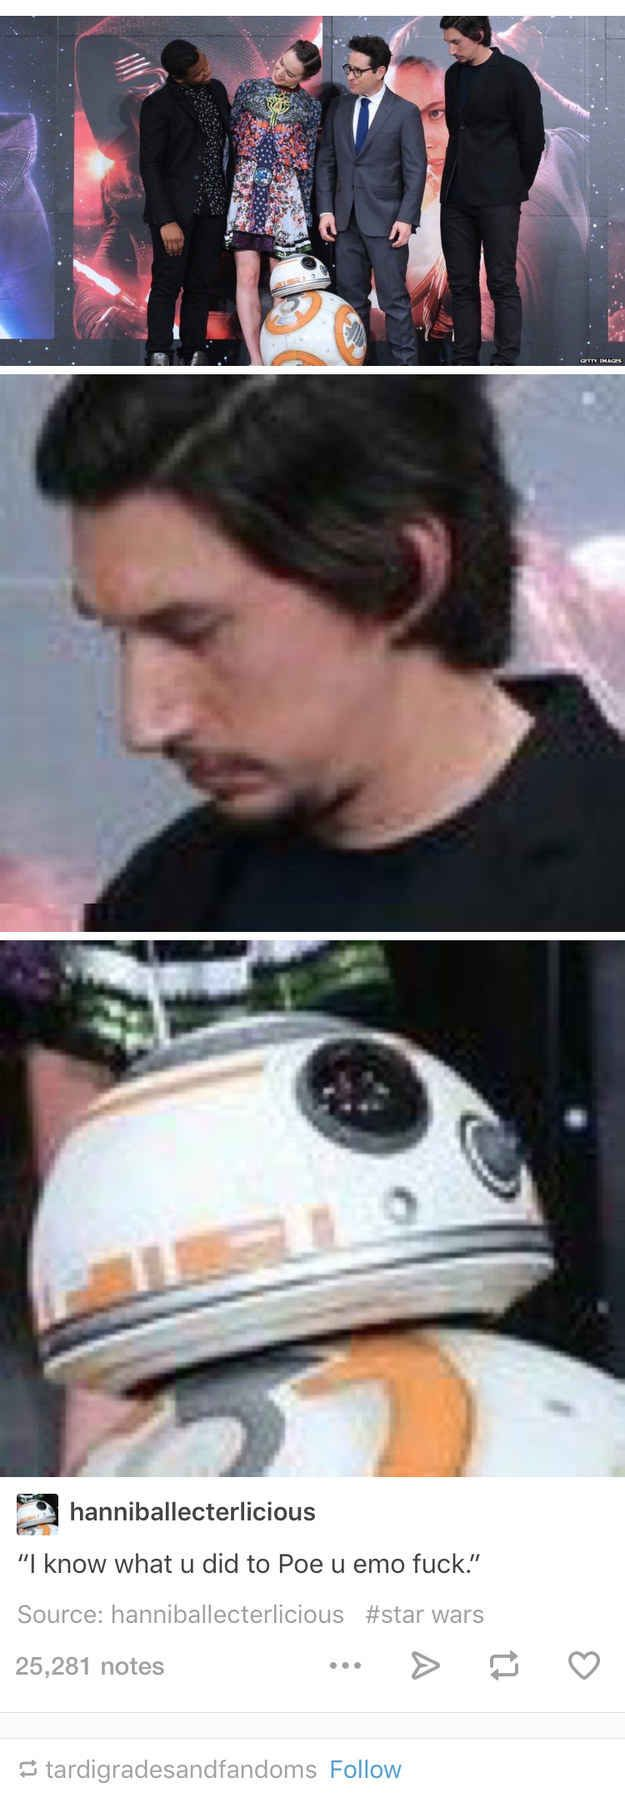 When they noticed BB-8 was keeping an eye out.